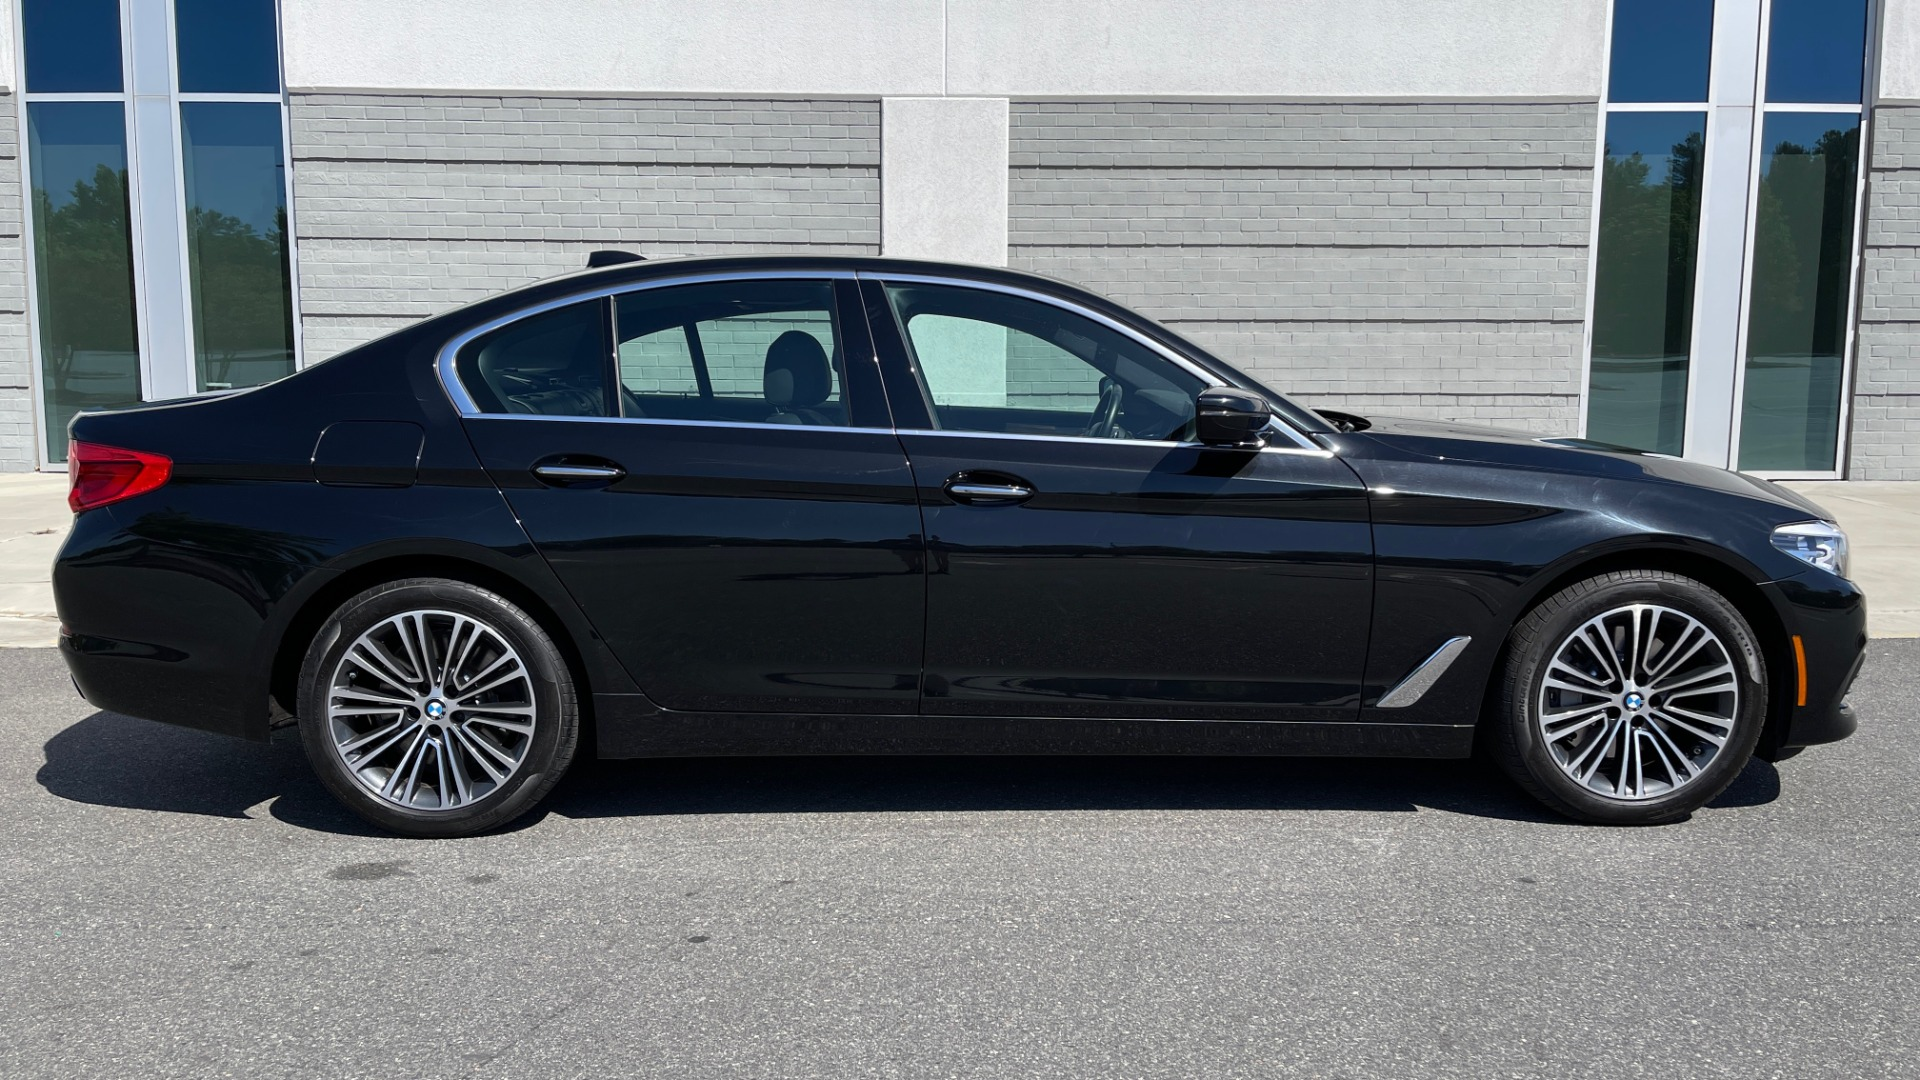 Used 2018 BMW 5 SERIES 540I XDRIVE PREMIUM / NAV / PARK ASST / WIRELESS CHARGING H/K SND for sale $38,395 at Formula Imports in Charlotte NC 28227 3